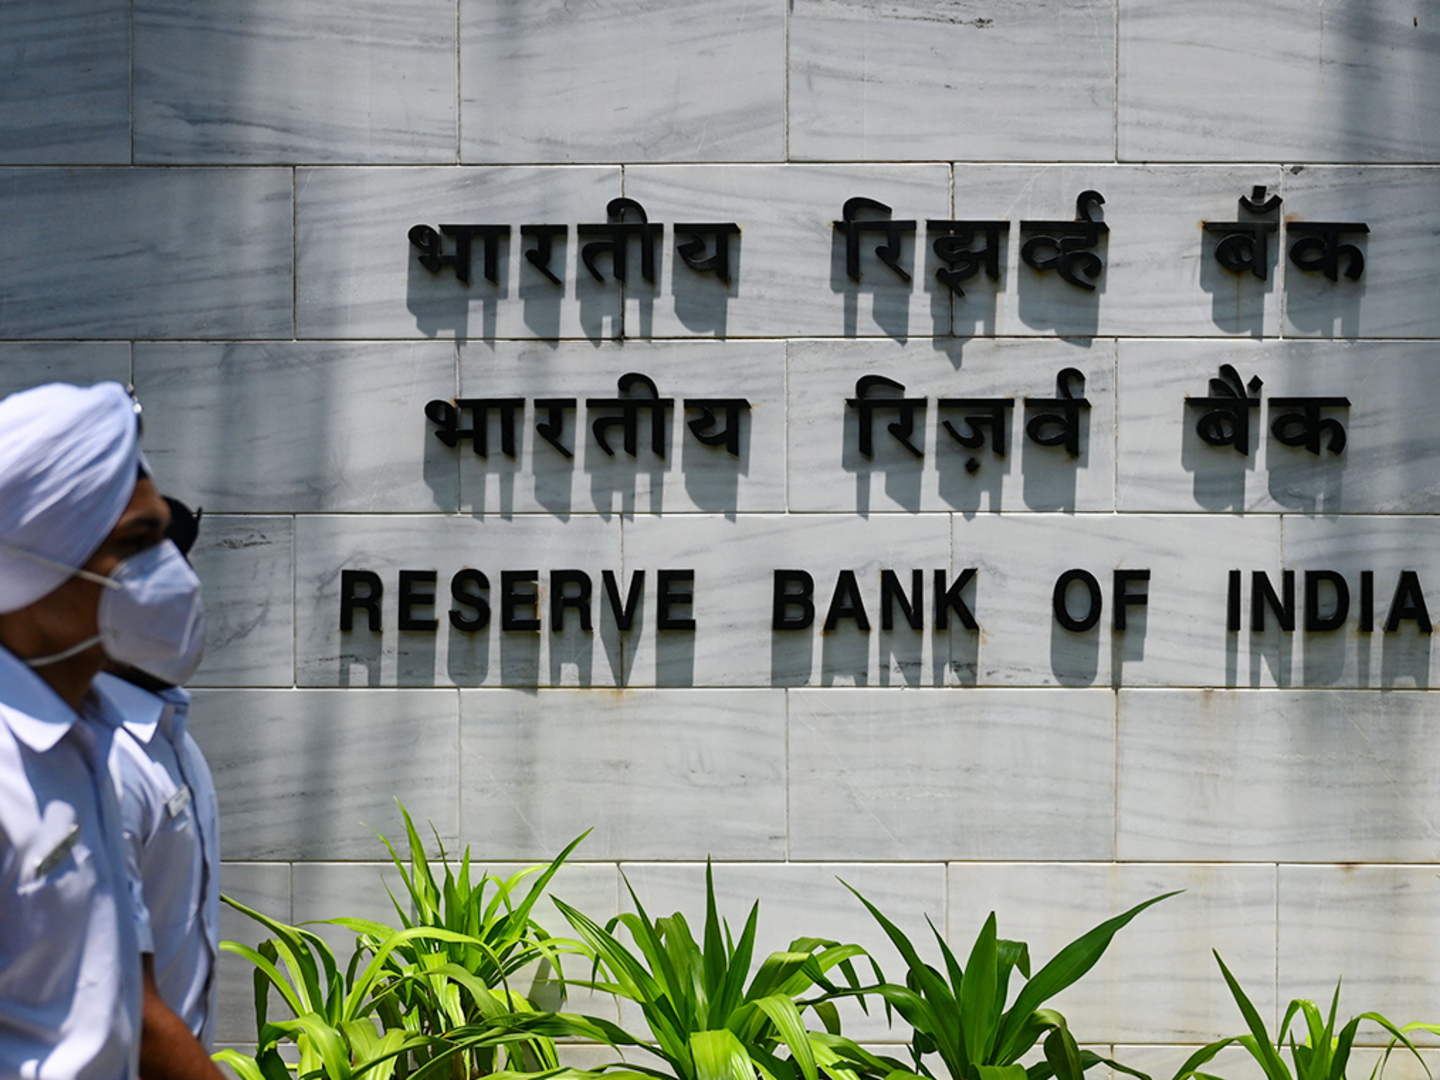 RBI makes a third attempt in its effort to root out bank collapses. But the challenge lies within.